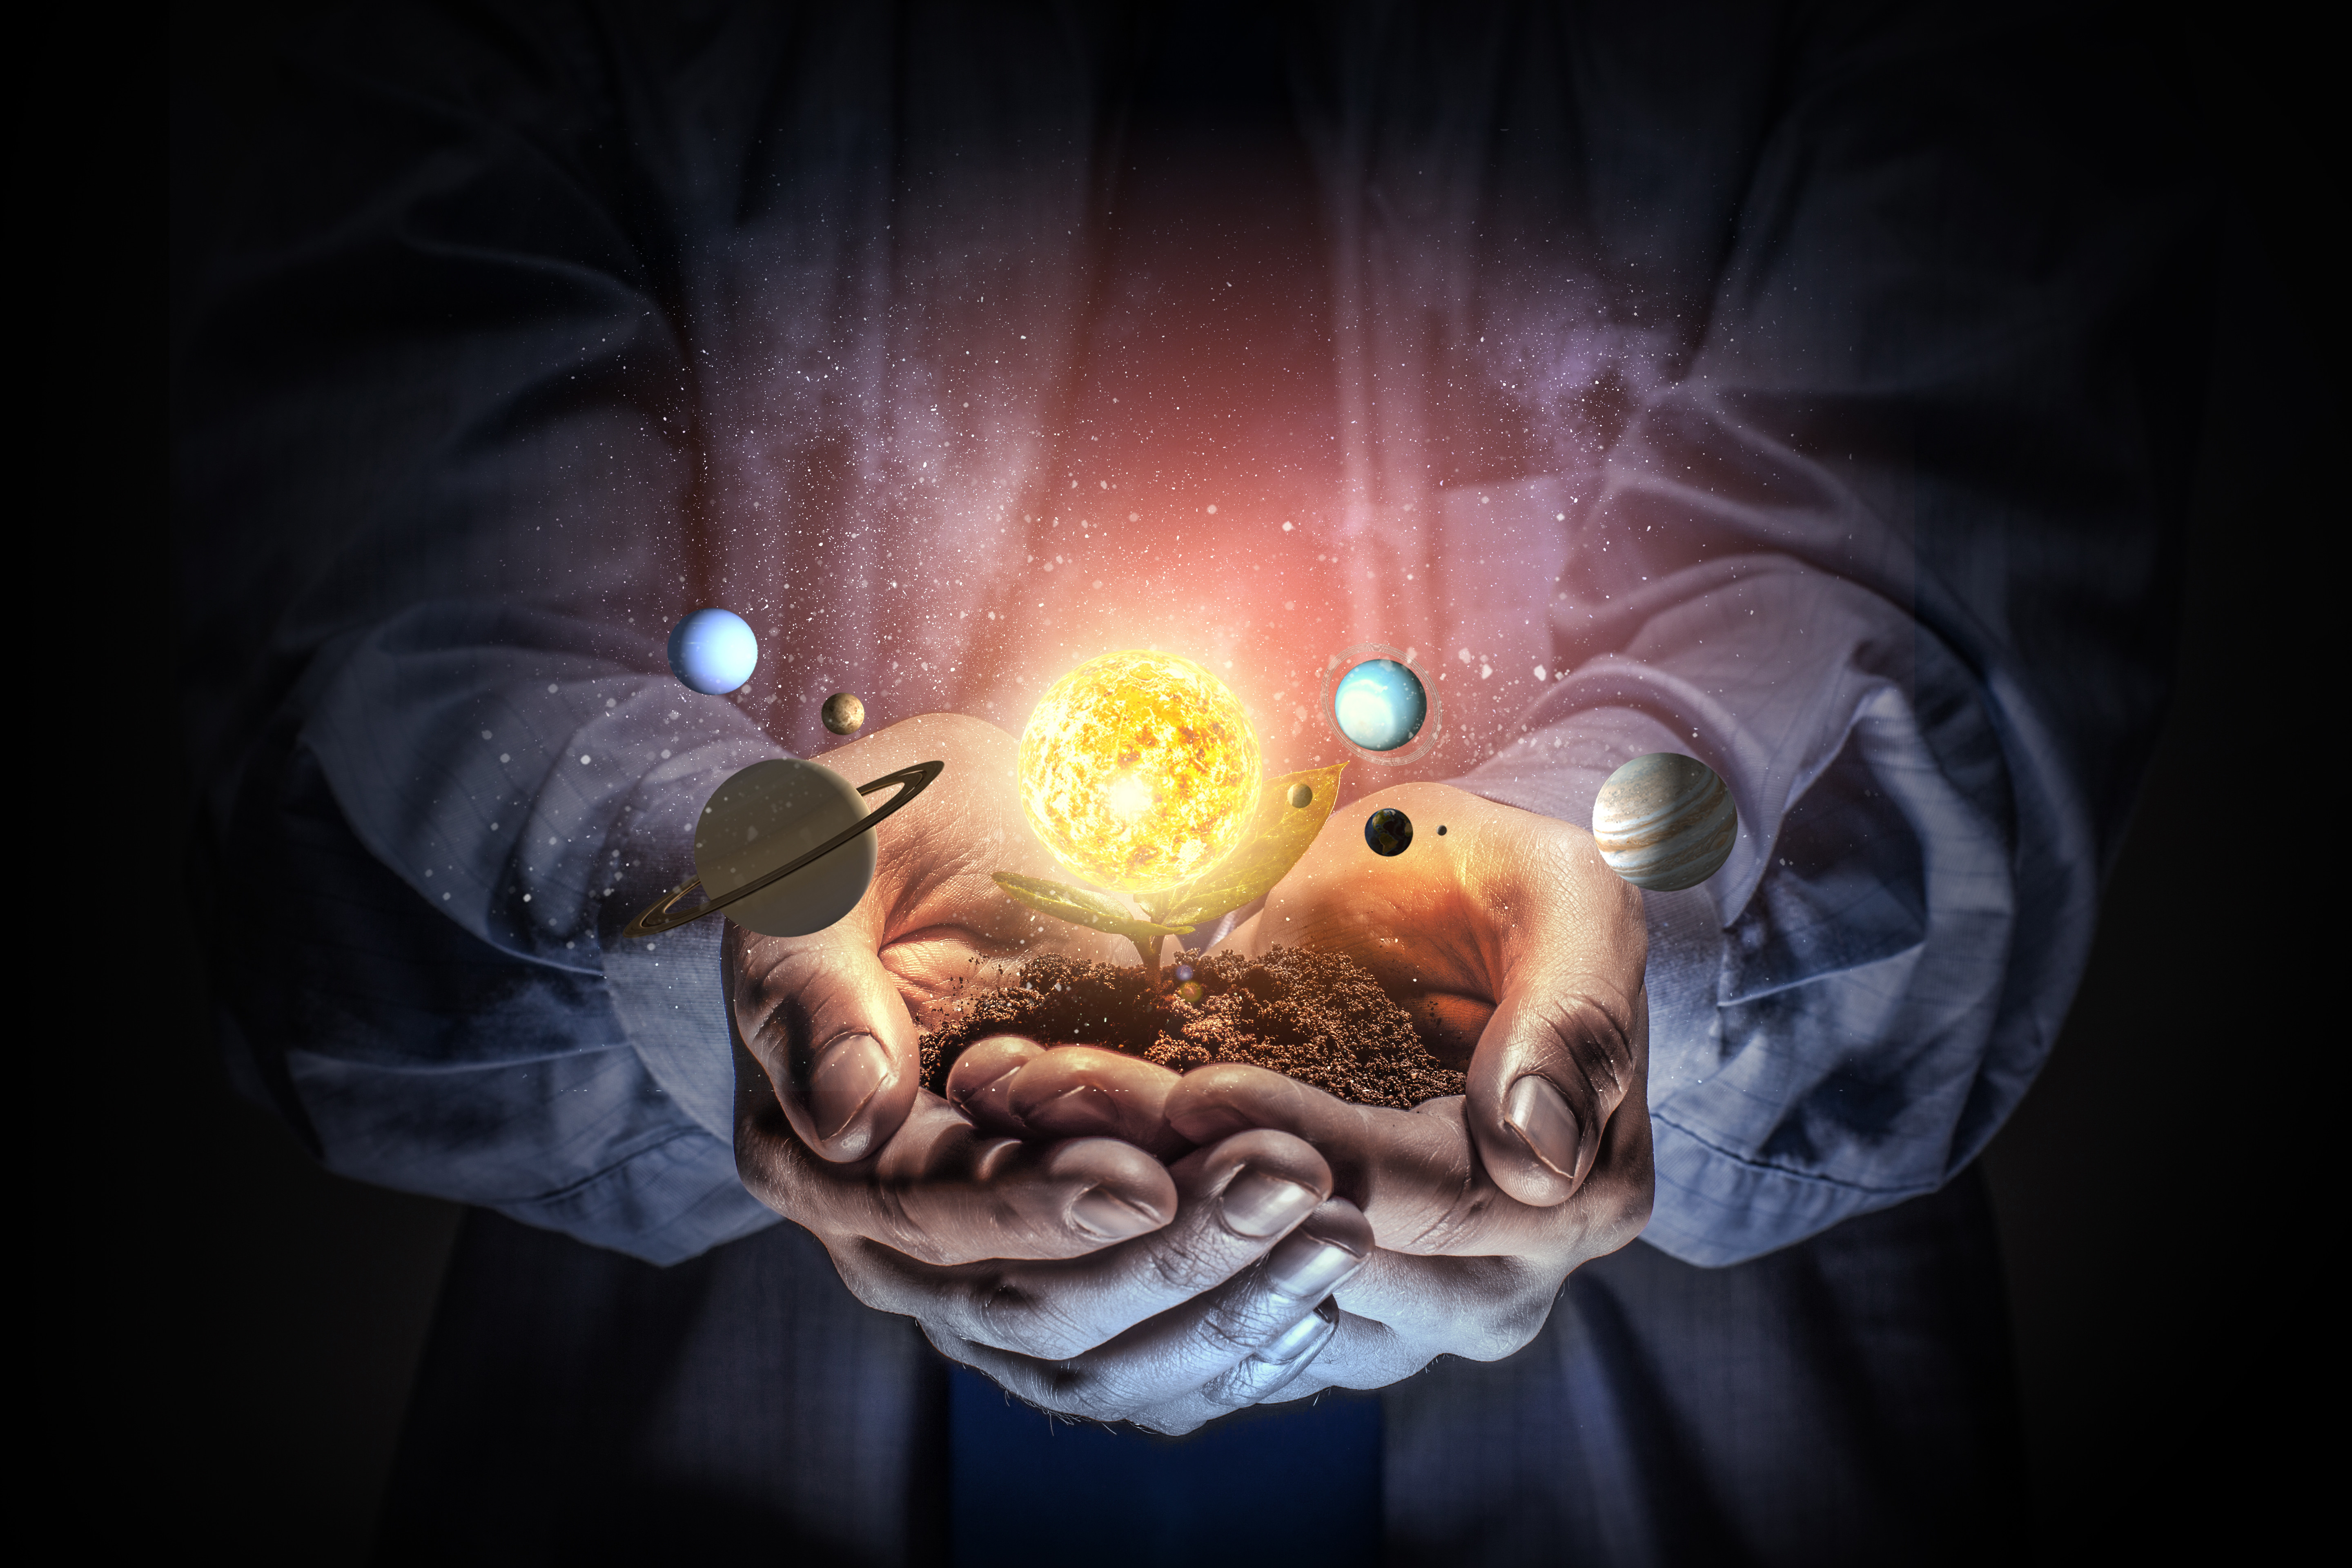 Union of Human and Cosmic Power